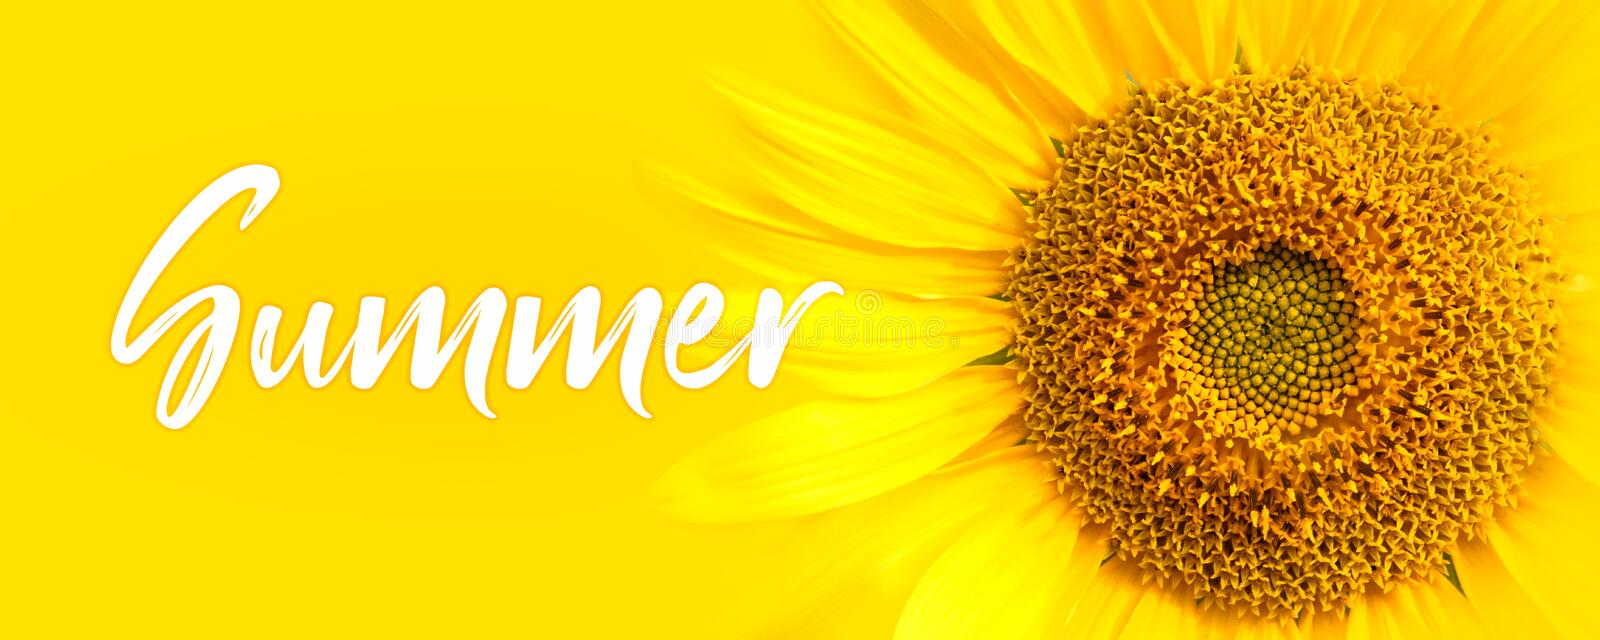 Summer text and sunflower close-up details. oncept for summer, sun, sunshine, tropical summer travel and hot days. Summer text and sunflower close-up details of royalty free stock photo